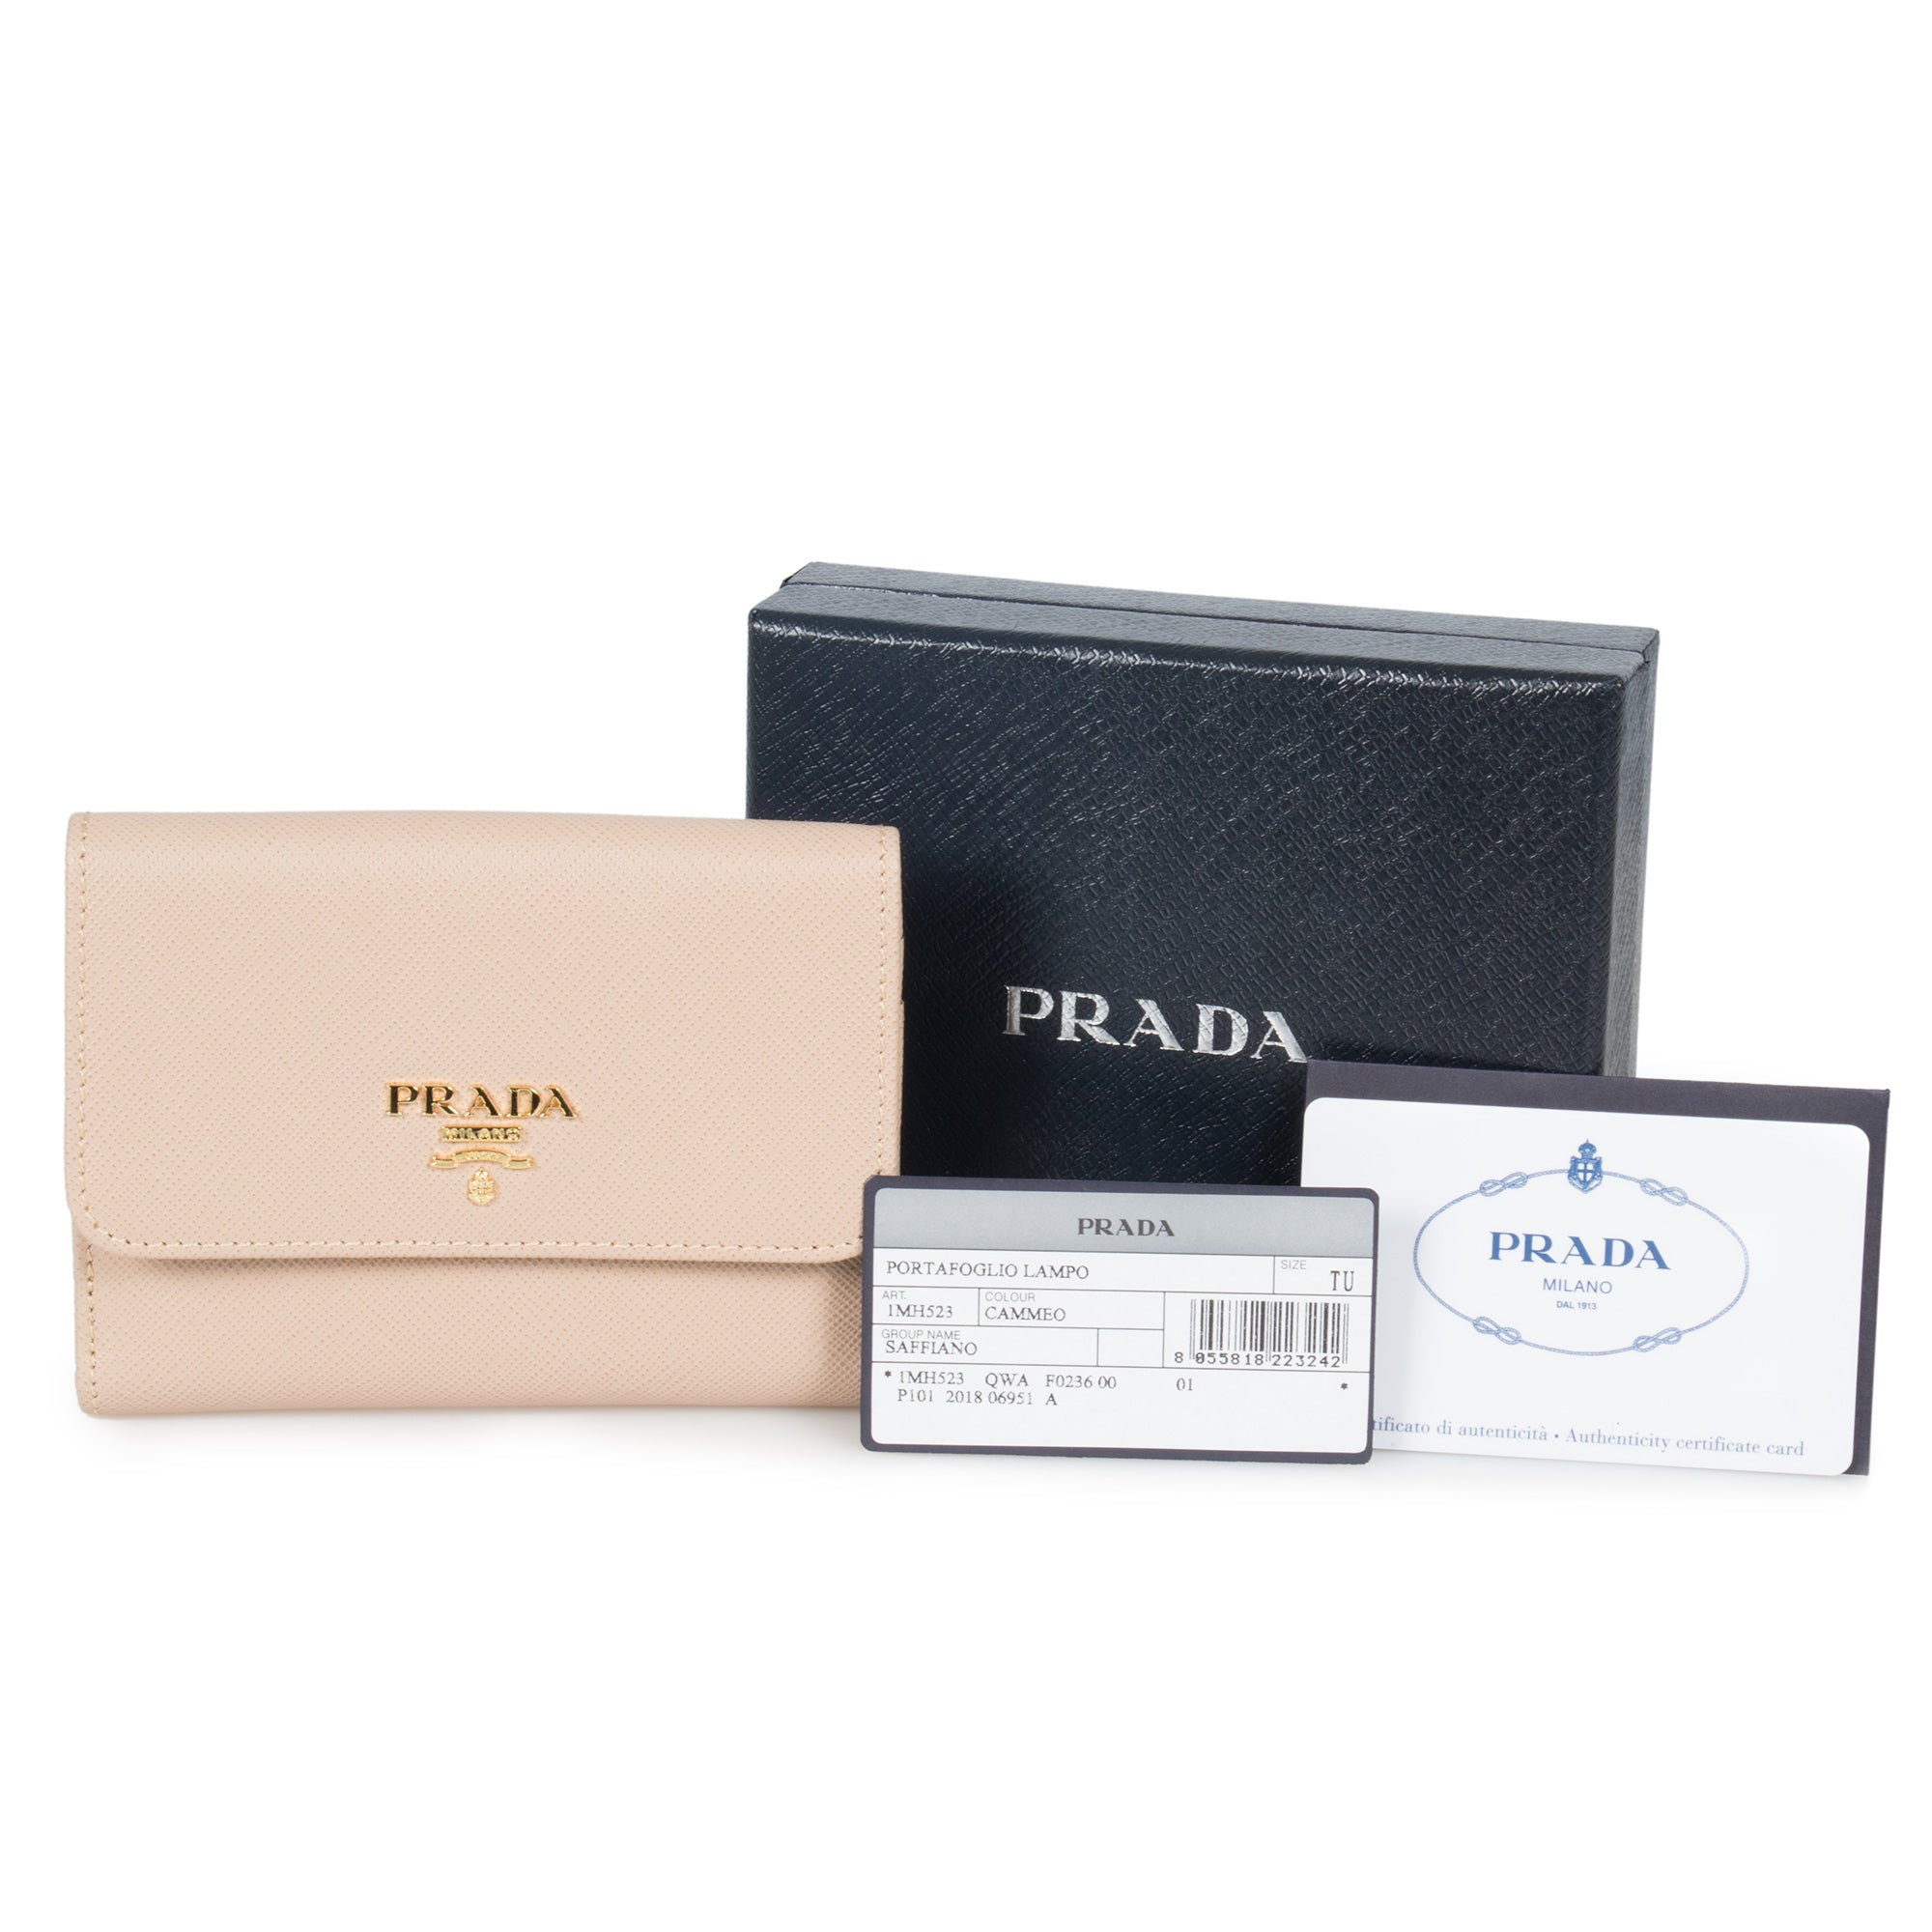 Prada Beige Saffiano Leather Flap Wallet 1MH523 QWA F0236